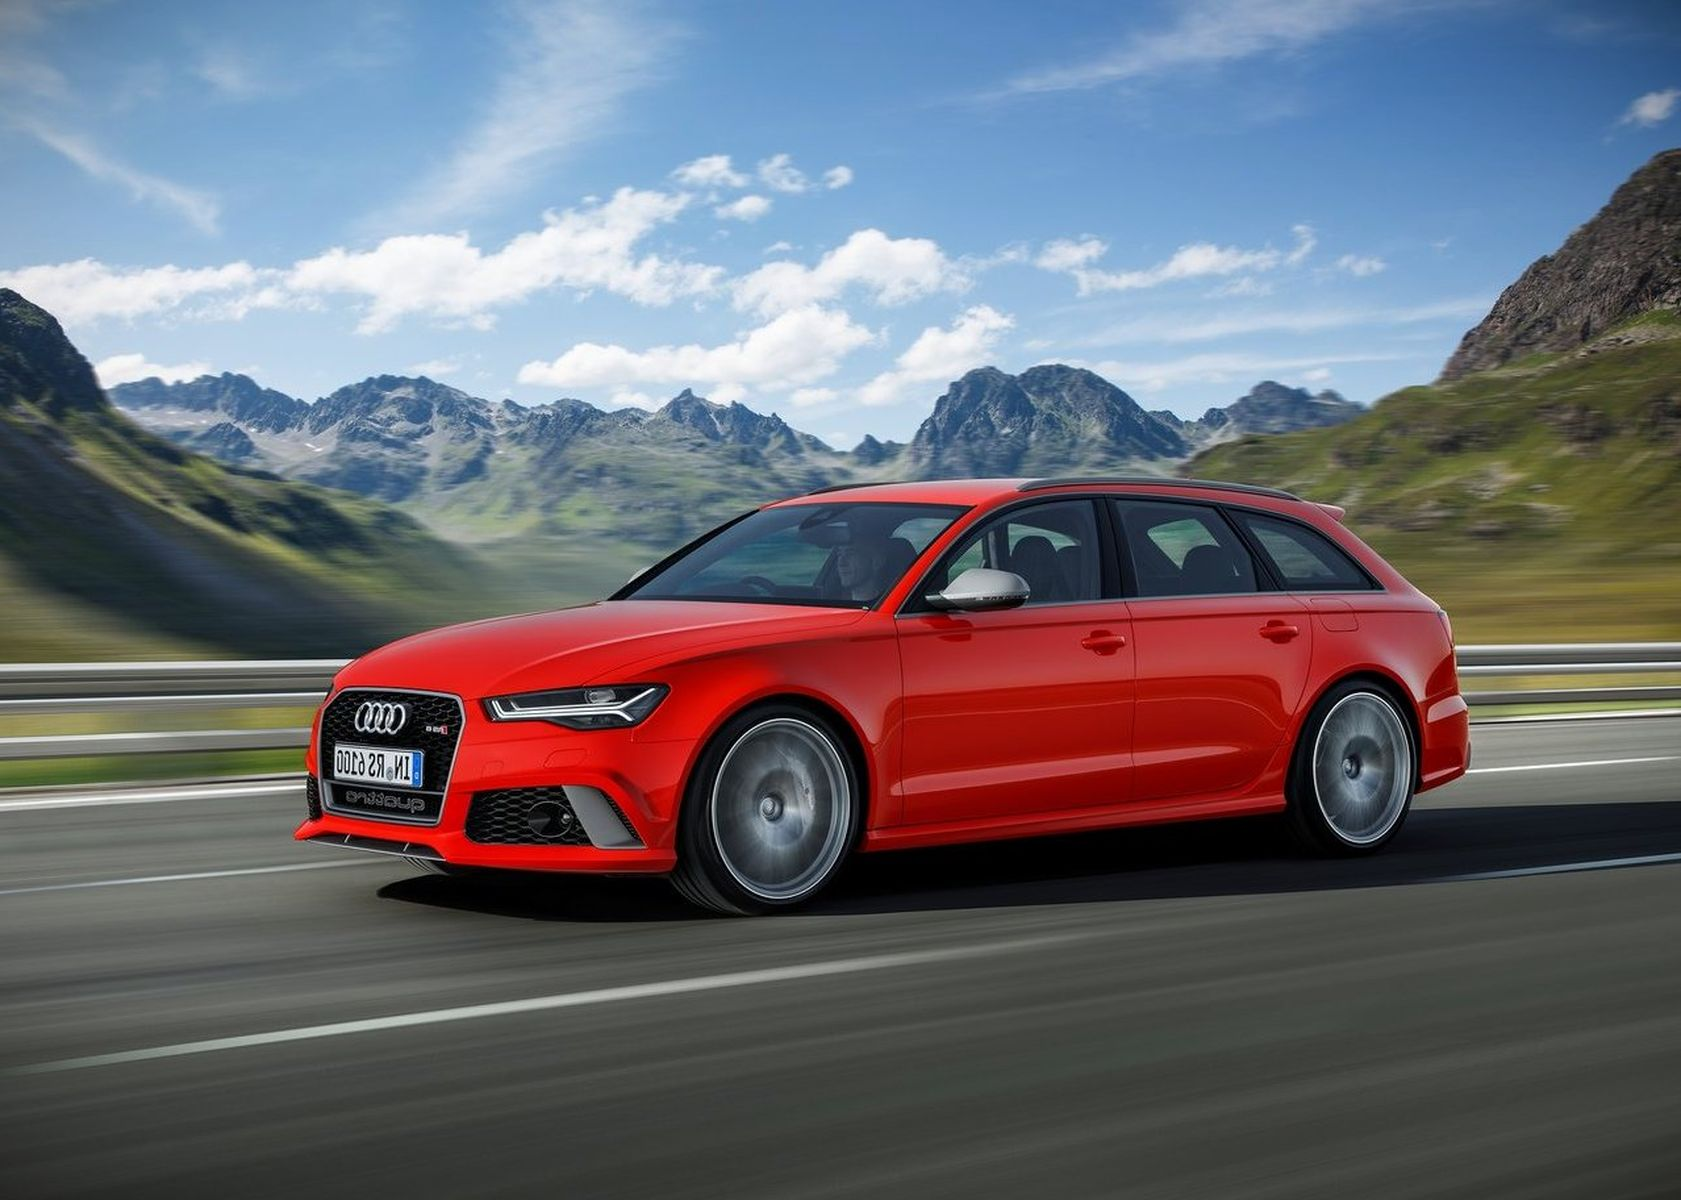 2018 Audi RS6 avant reviews